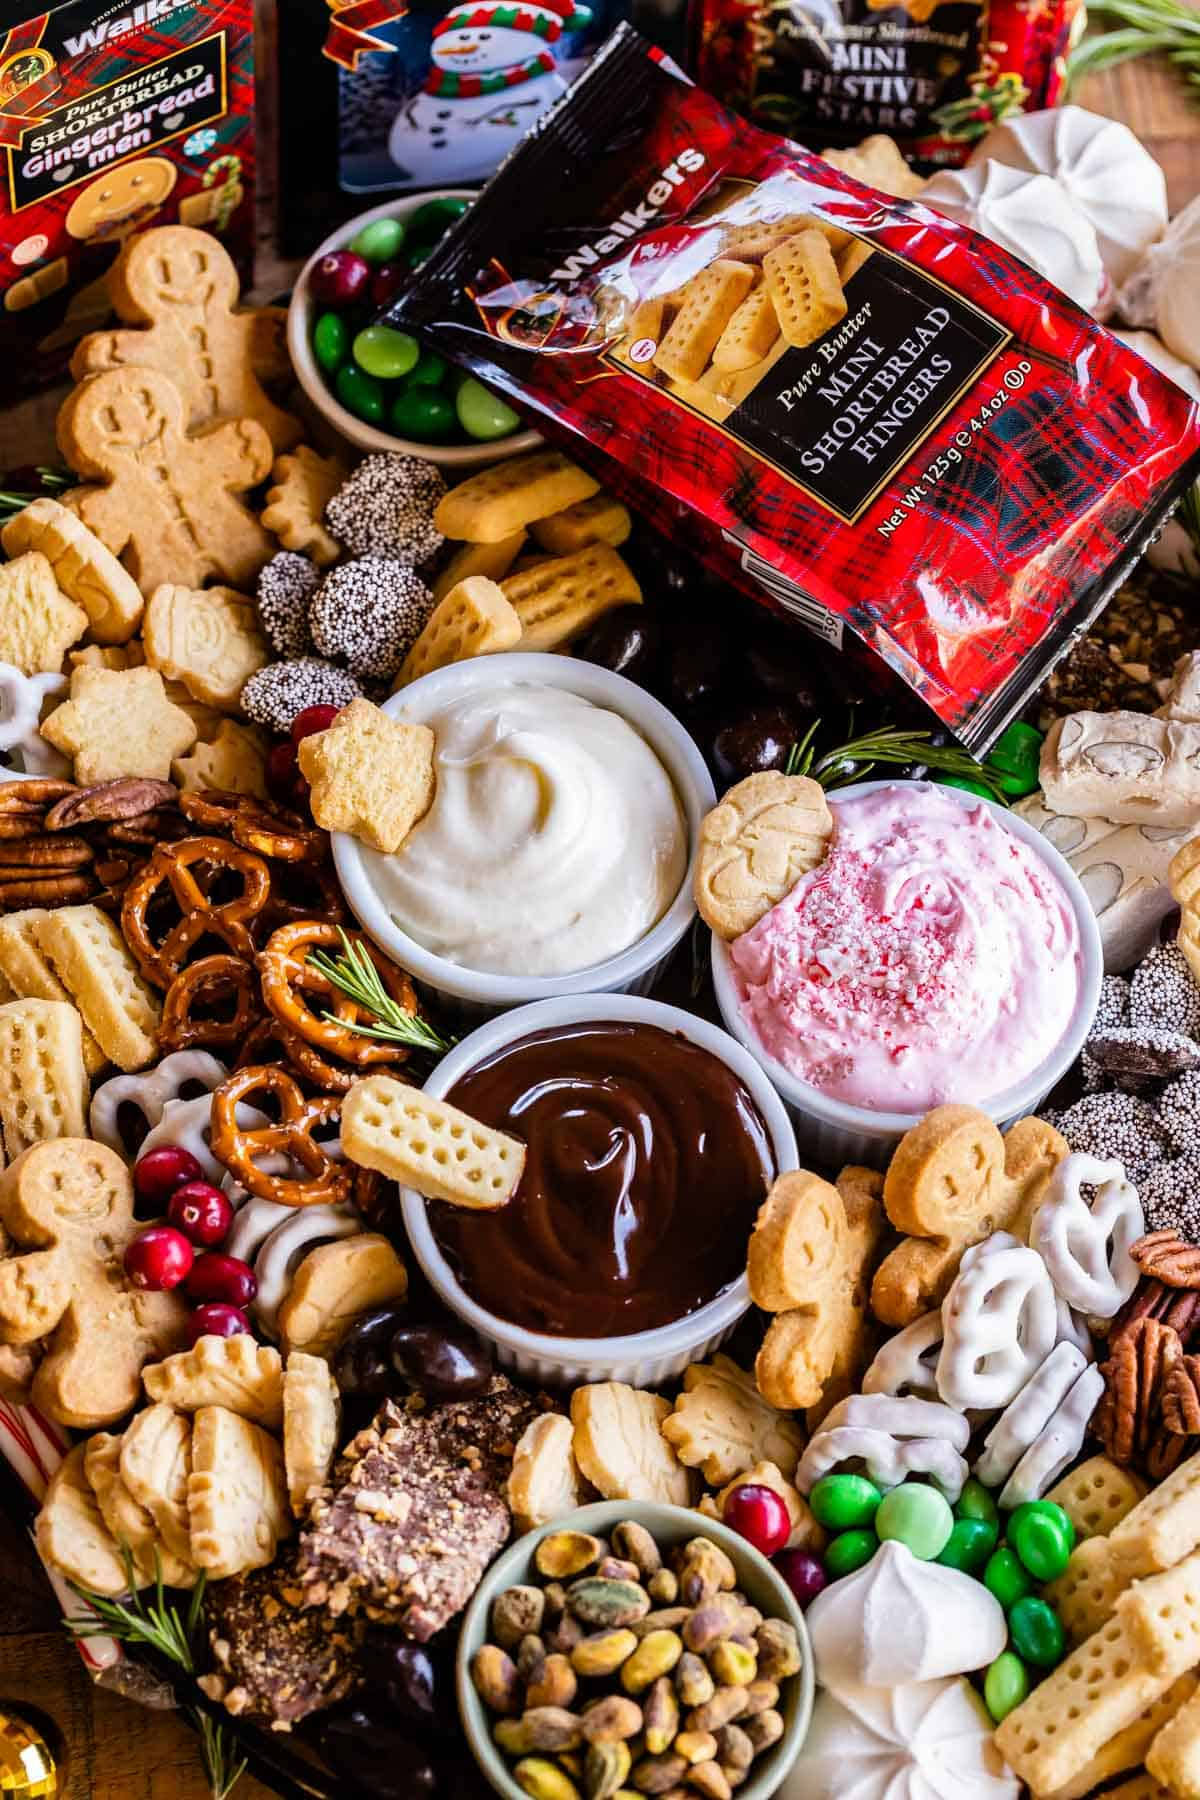 Dessert Charcuterie Board with Walkers Shortbread Cookies